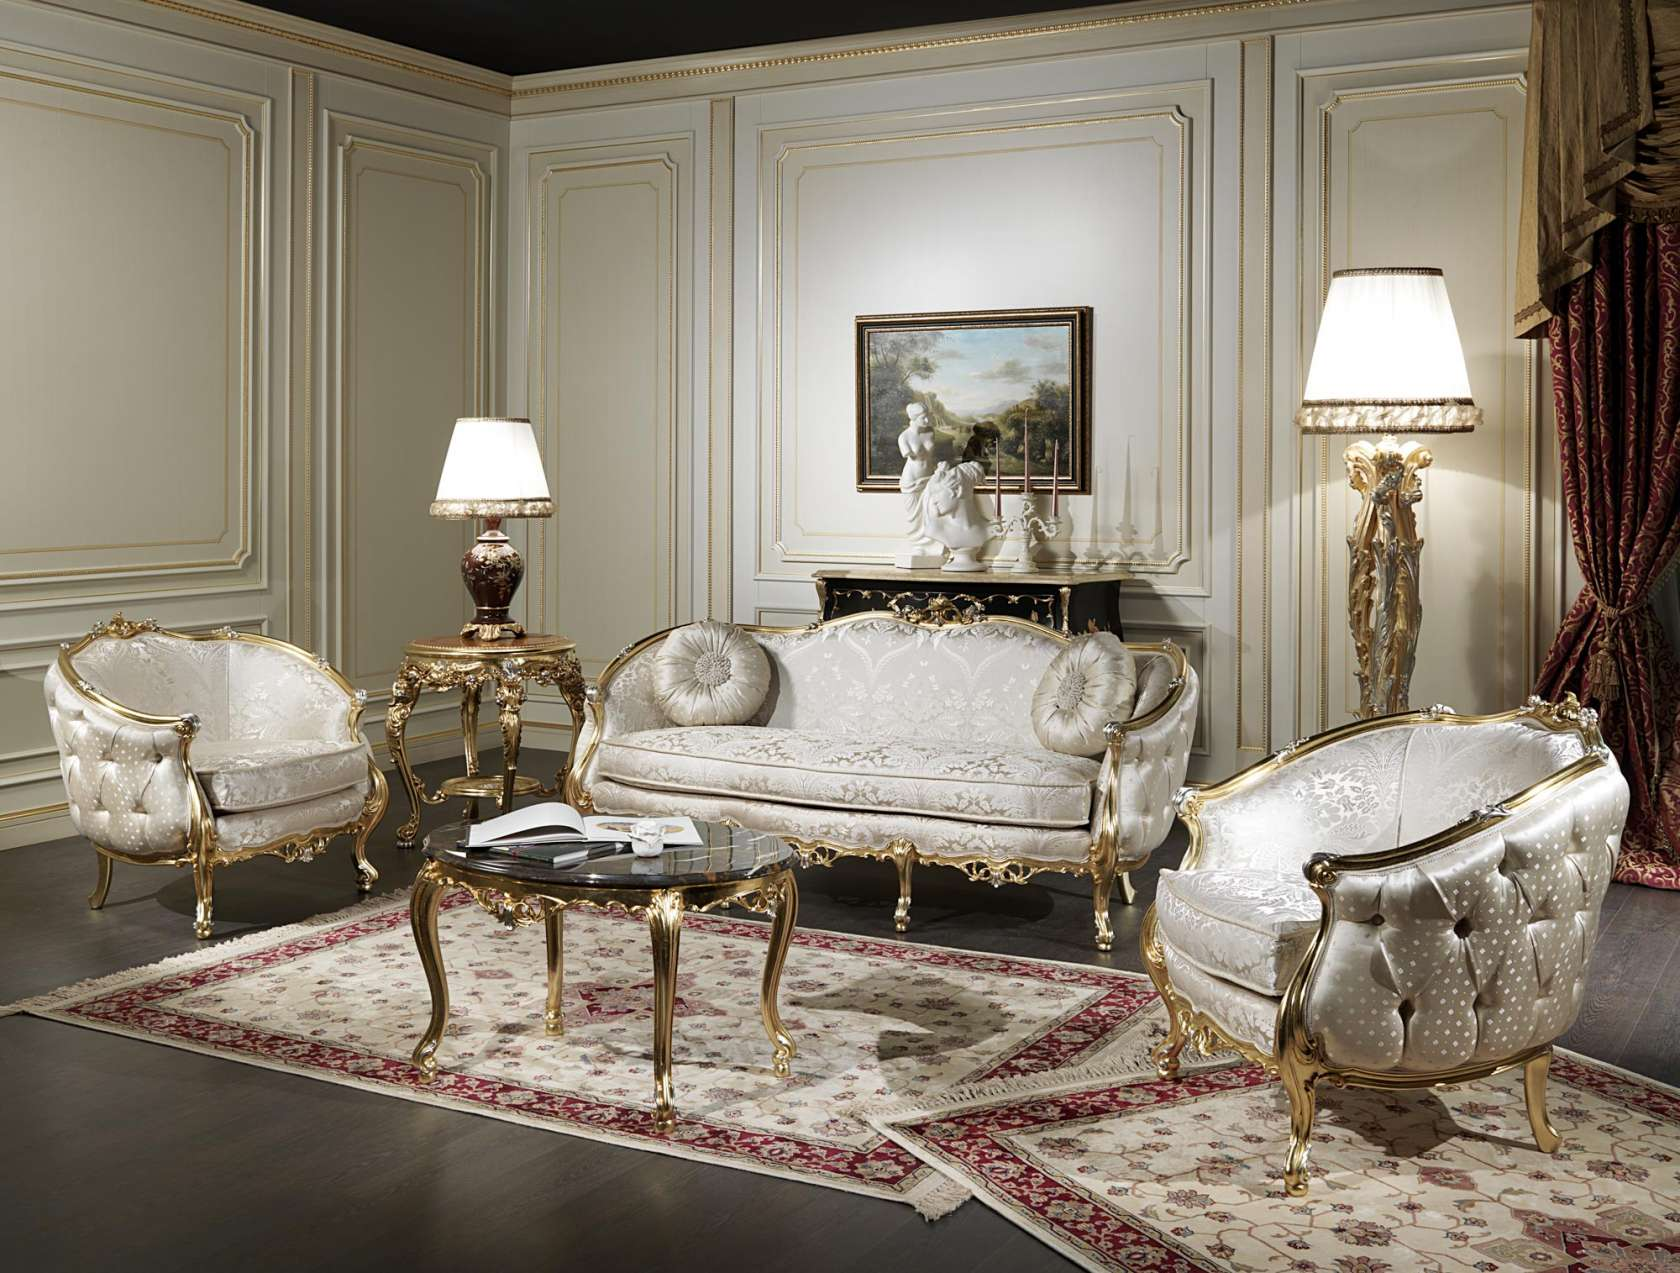 Italian living room interiors - Venezia Luxury Classic Living Room